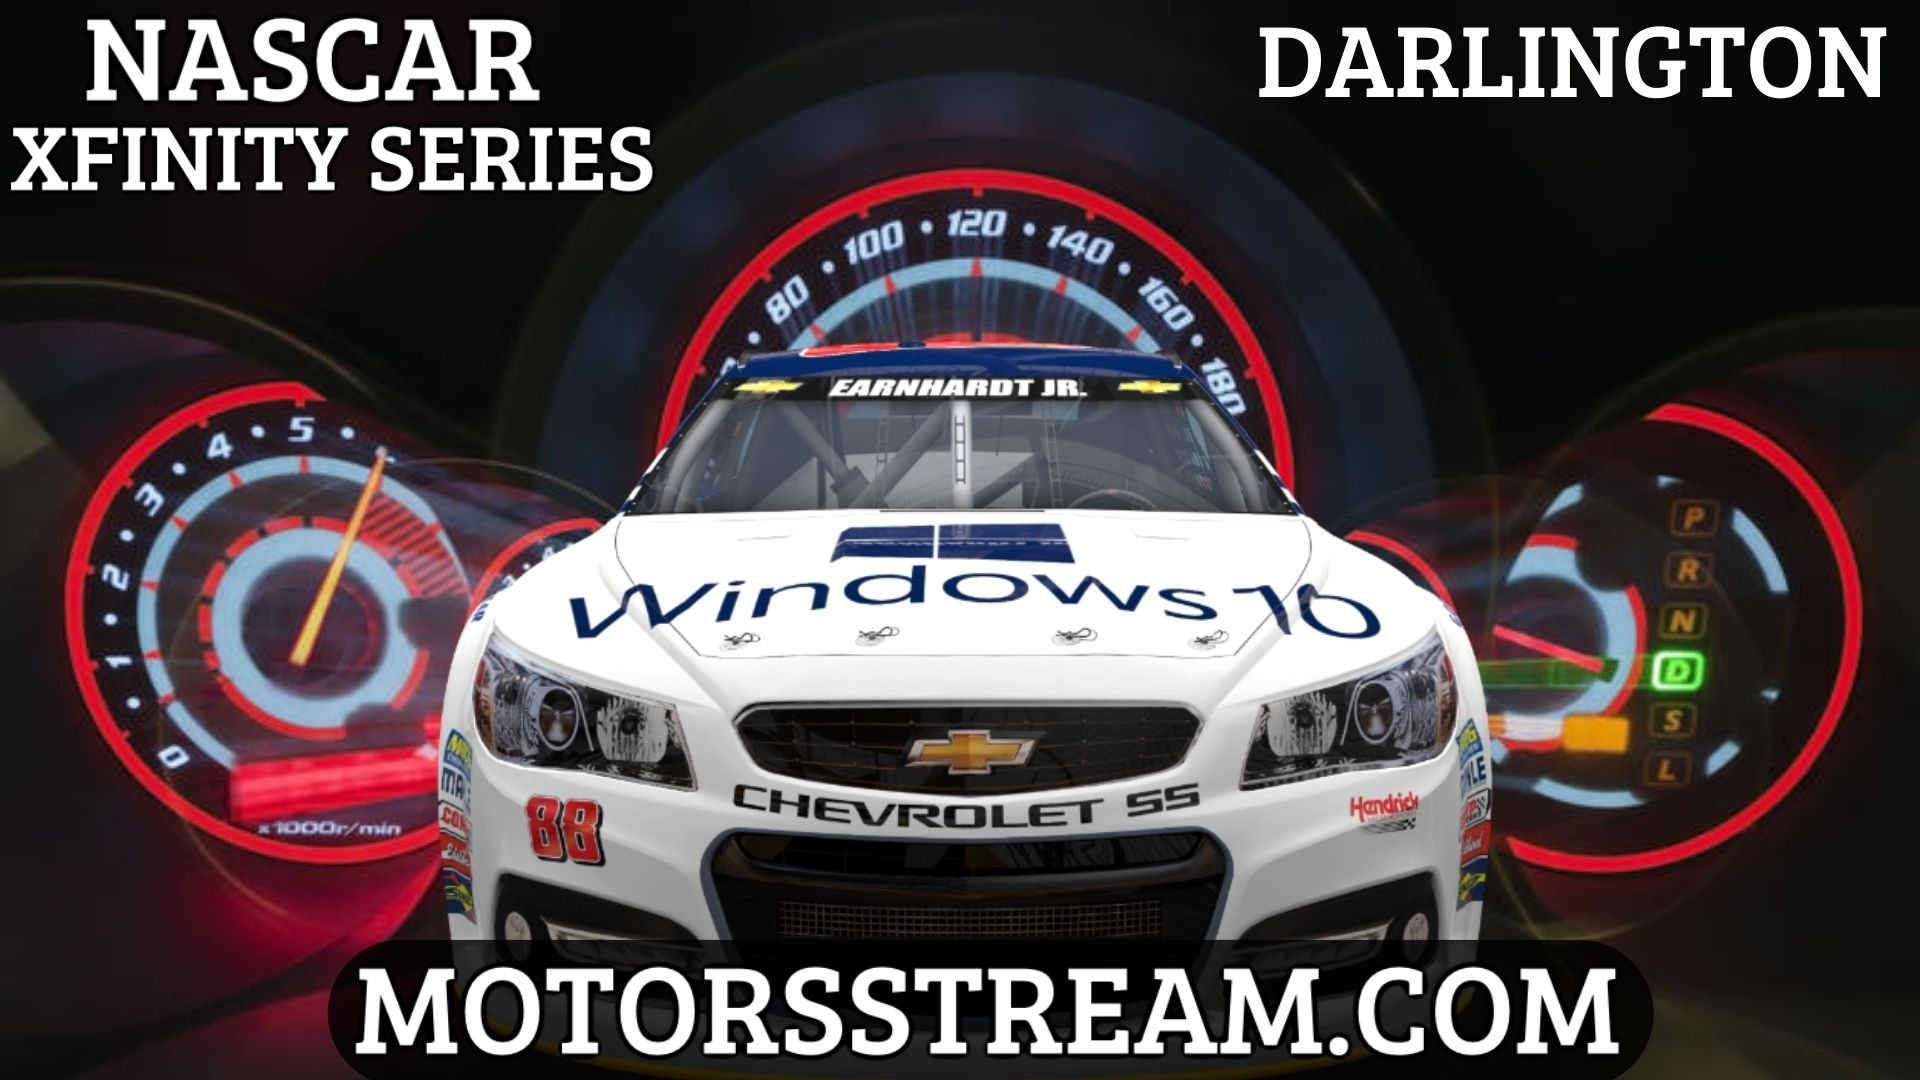 NASCAR Xfinity Series Race At Darlington Live Stream | Darlington 2021